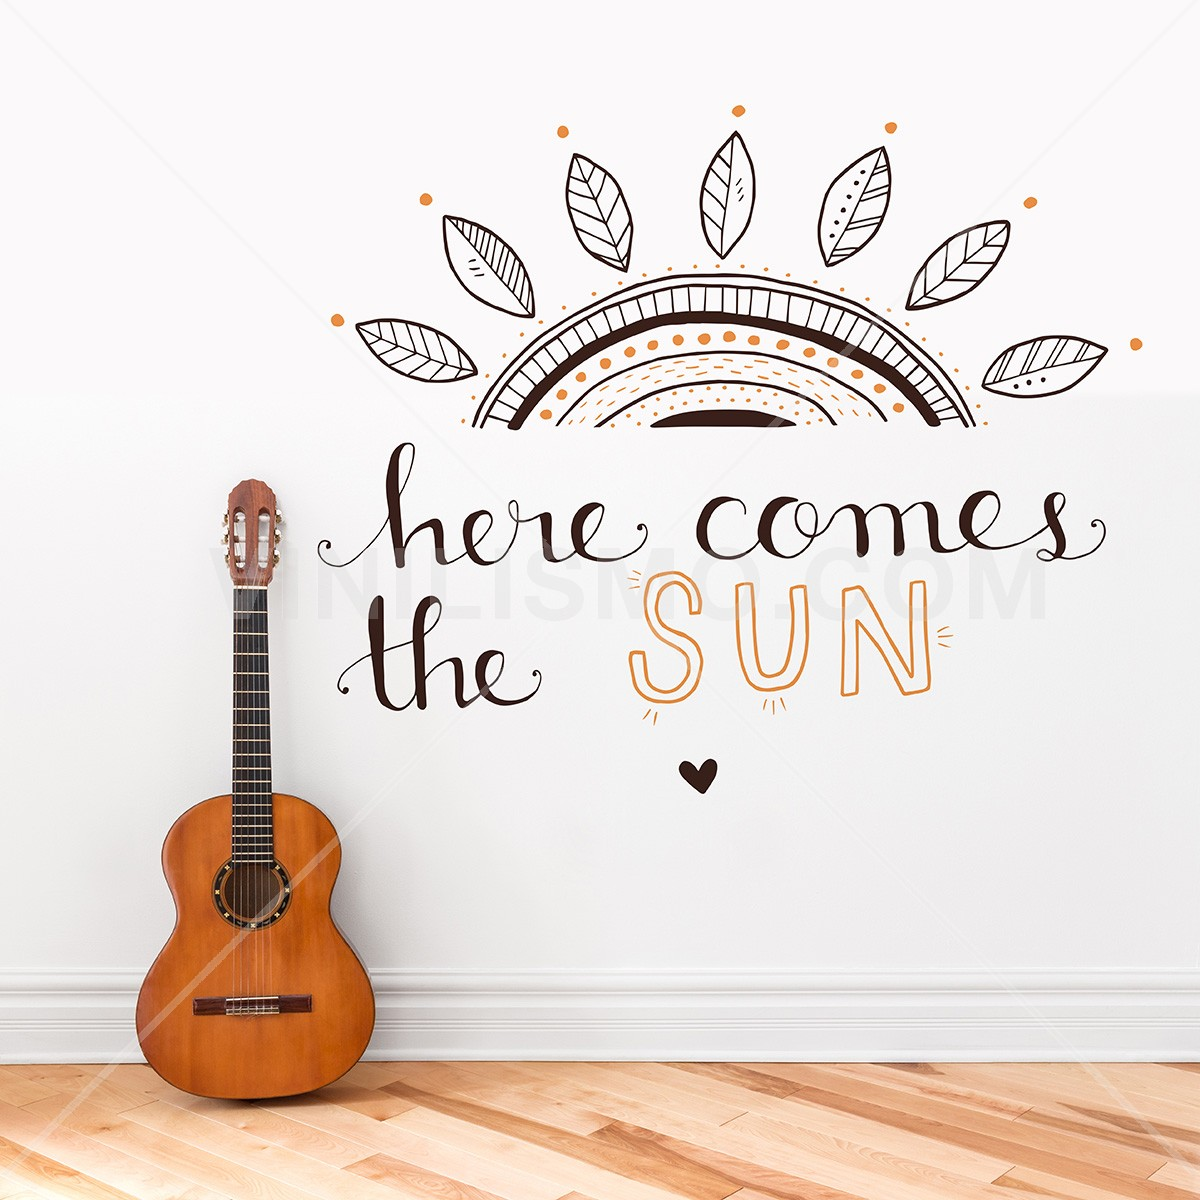 Vinilo Decorativo: Here comes the sun